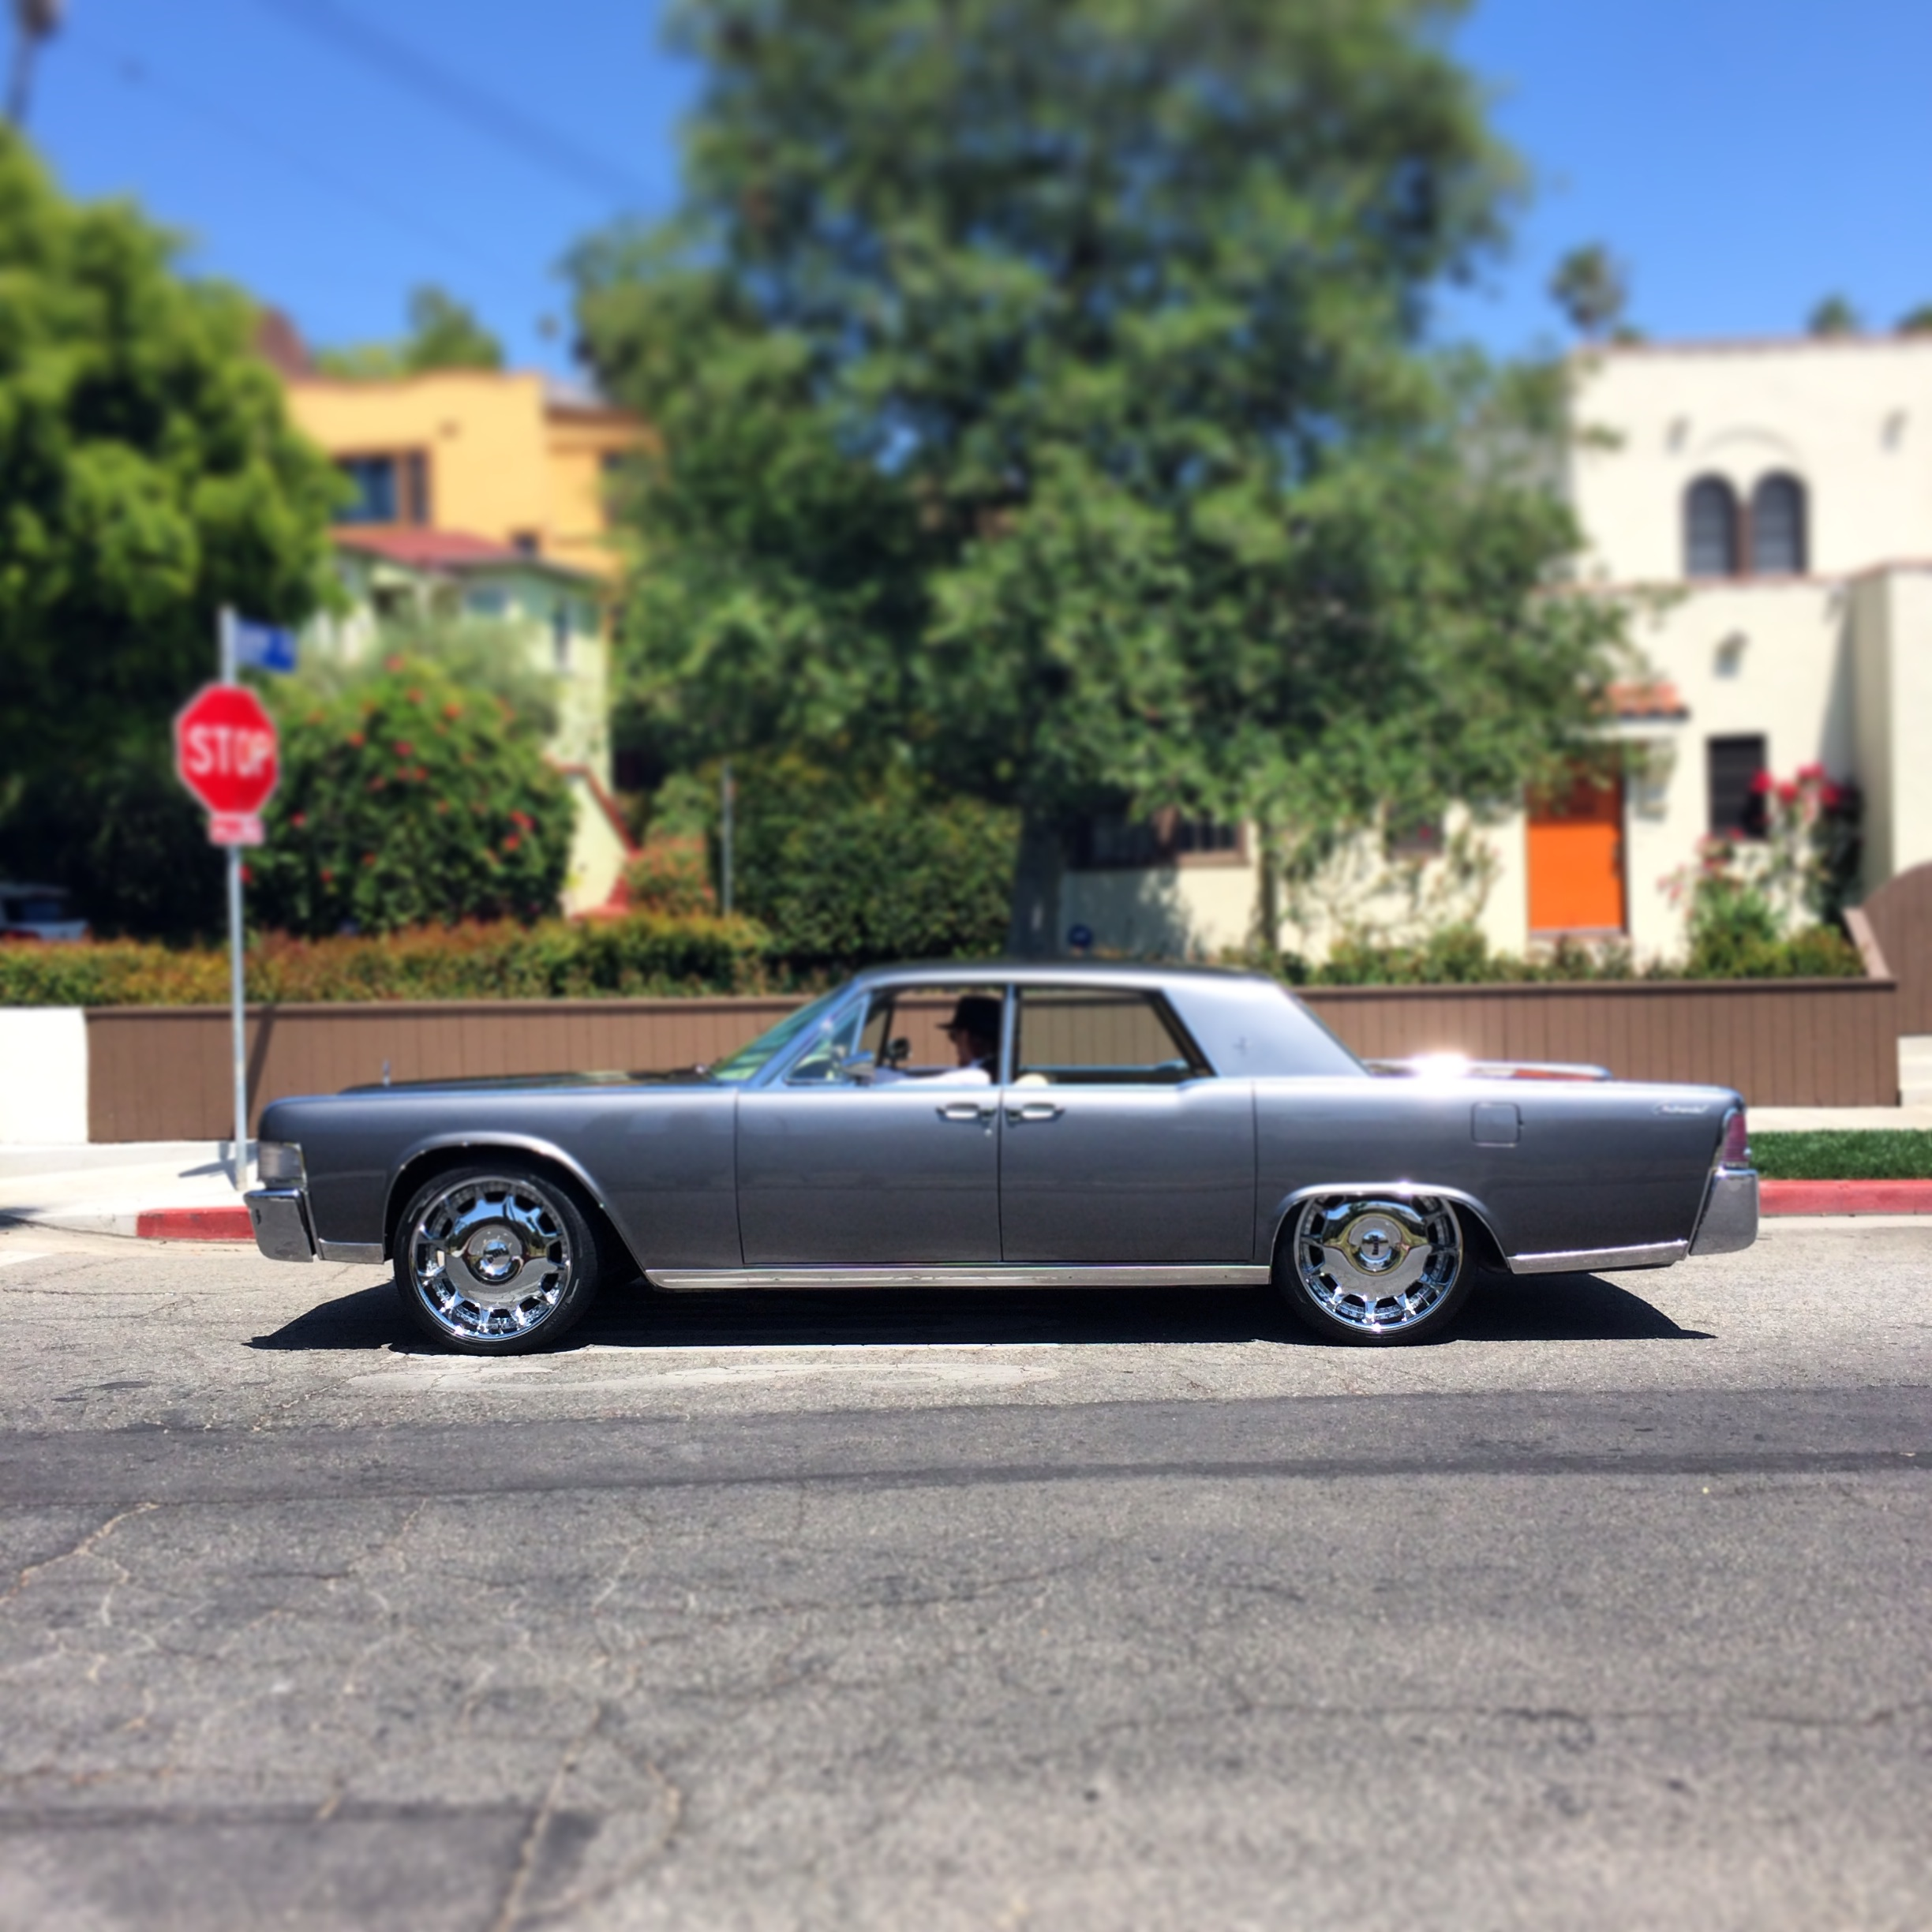 Dandy's '65 Continental is the quintessential land yacht.